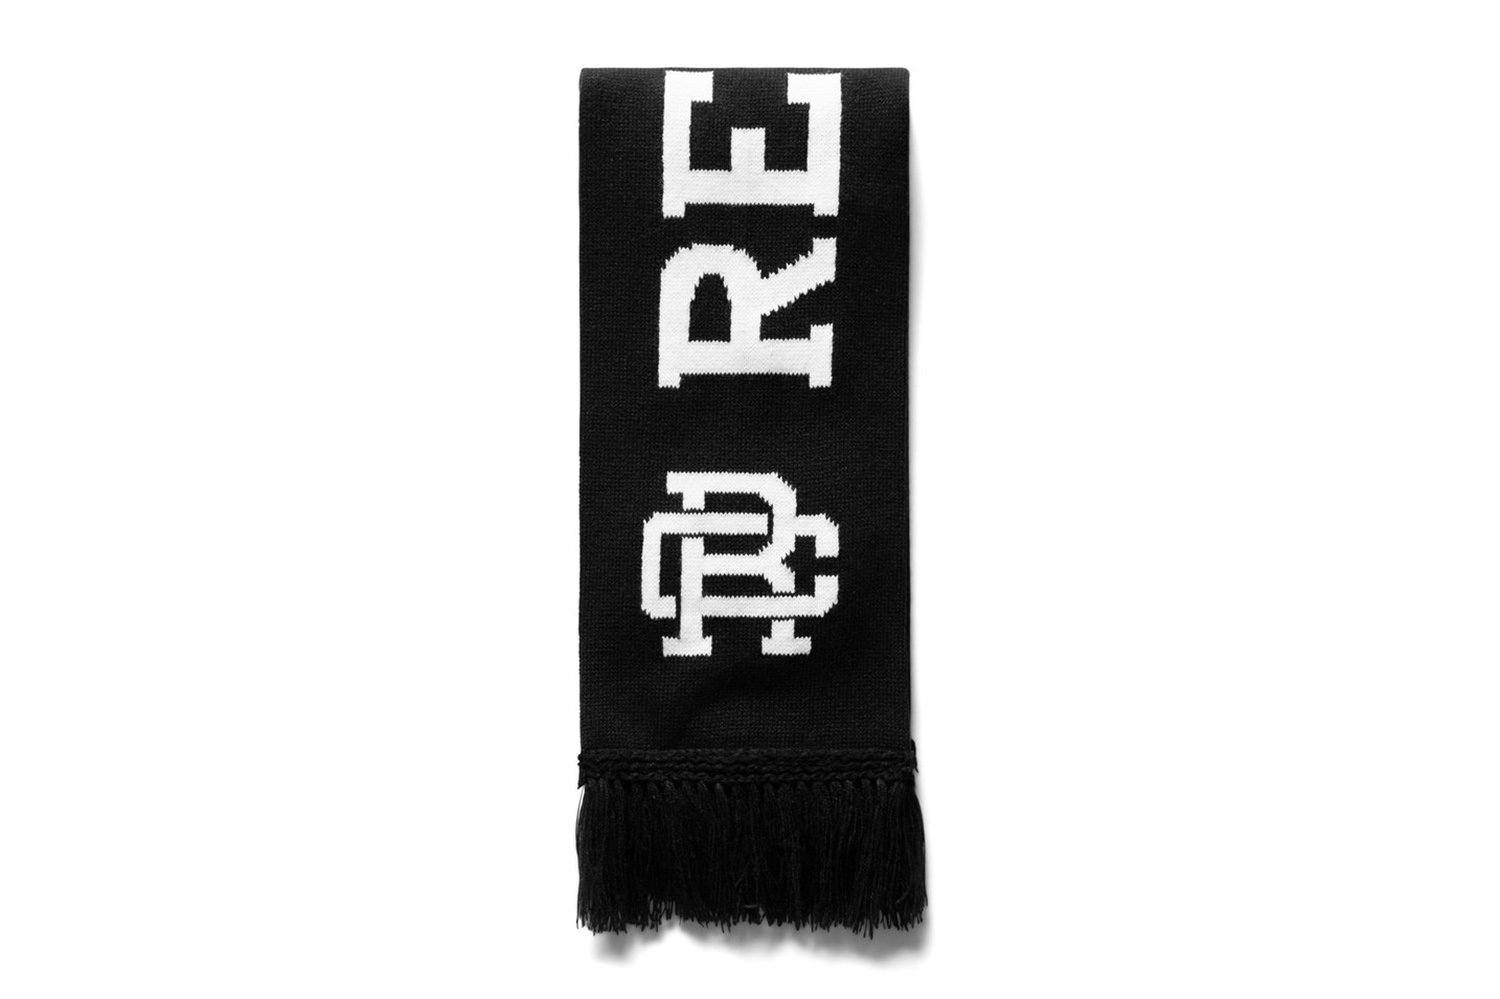 KNIT STADIUM SCARF-RC-7133 MENS SOFTGOODS REIGNING CHAMP BLACK/WHITE O/S